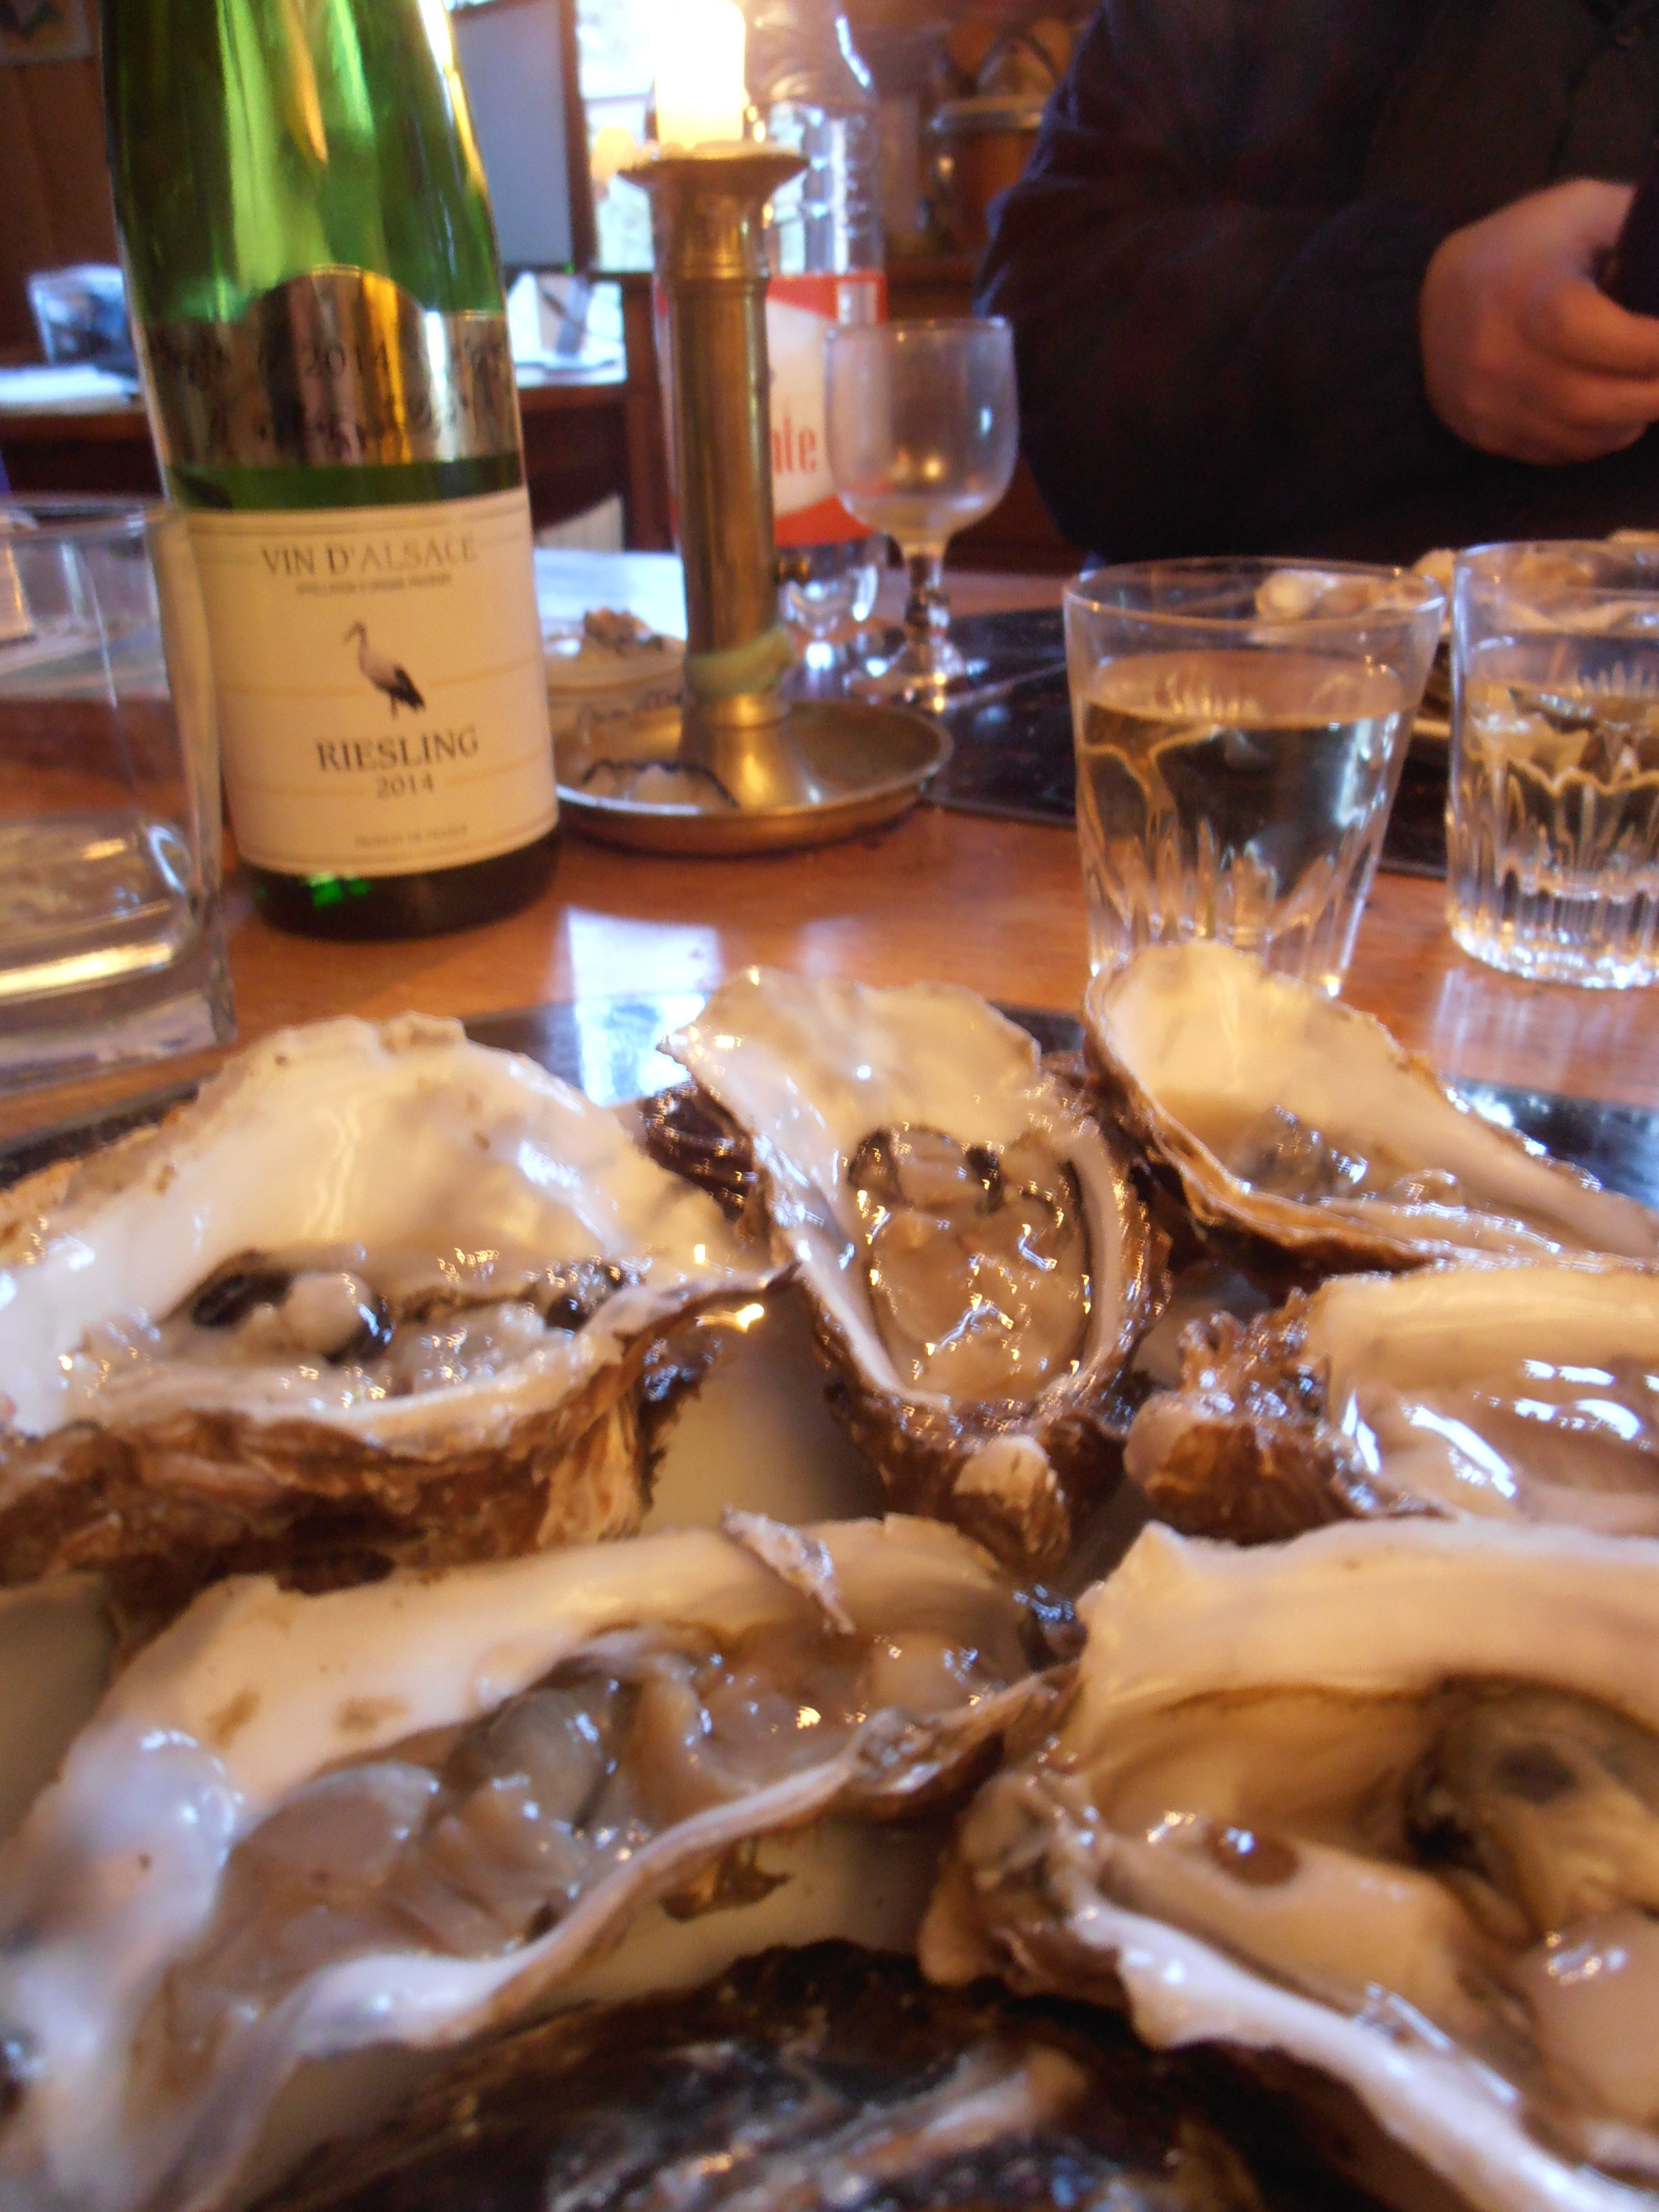 To me; Enjoying Oysters equals enjoying Life. So that is a true reason for it being so valuable to share. I Know at the correct time, what is best will be, and just in time for that one person, wishing to be assisted (or not) in the art of loving oysters. http://olivierlebreton.nl/